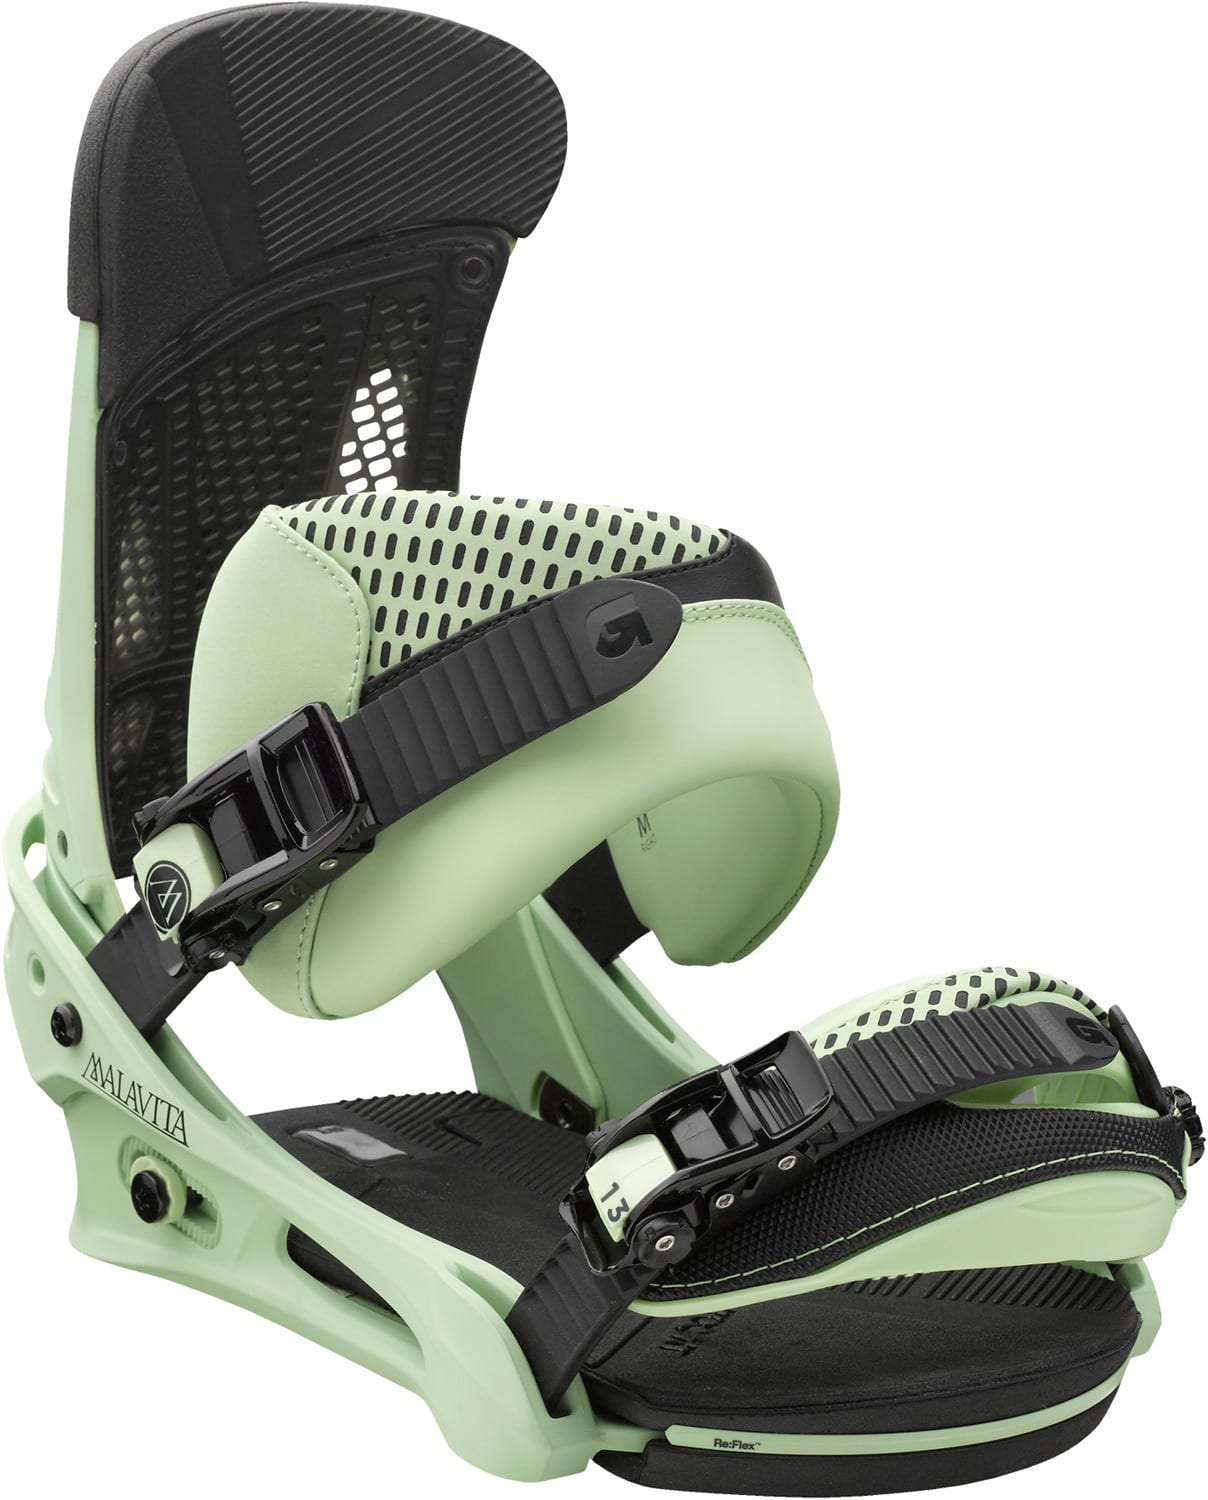 On Sale Burton Malavita Snowboard Bindings Up To 60% Off